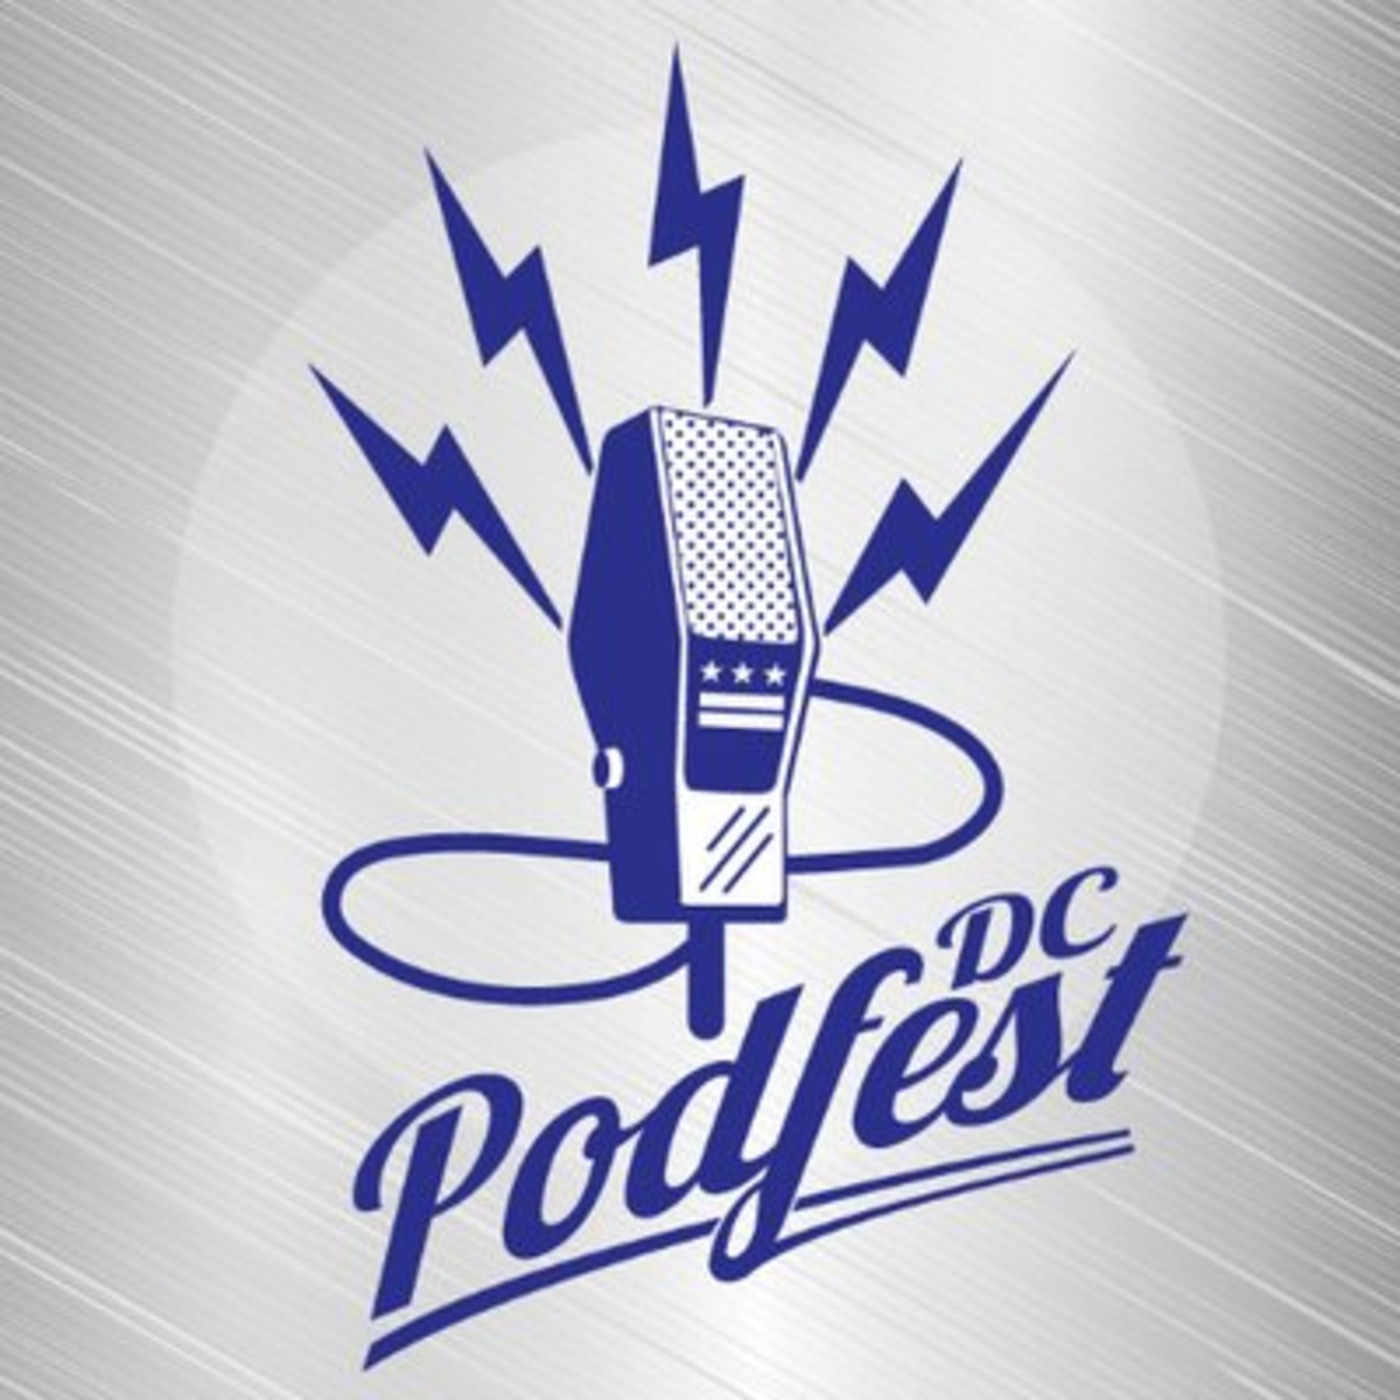 Fusebox Radio 550 When Bad Audio Happens Time To Dig Into The Fuse Box 574 Dc Podfest 2018 Diversity Panel Live Not All Podcasters